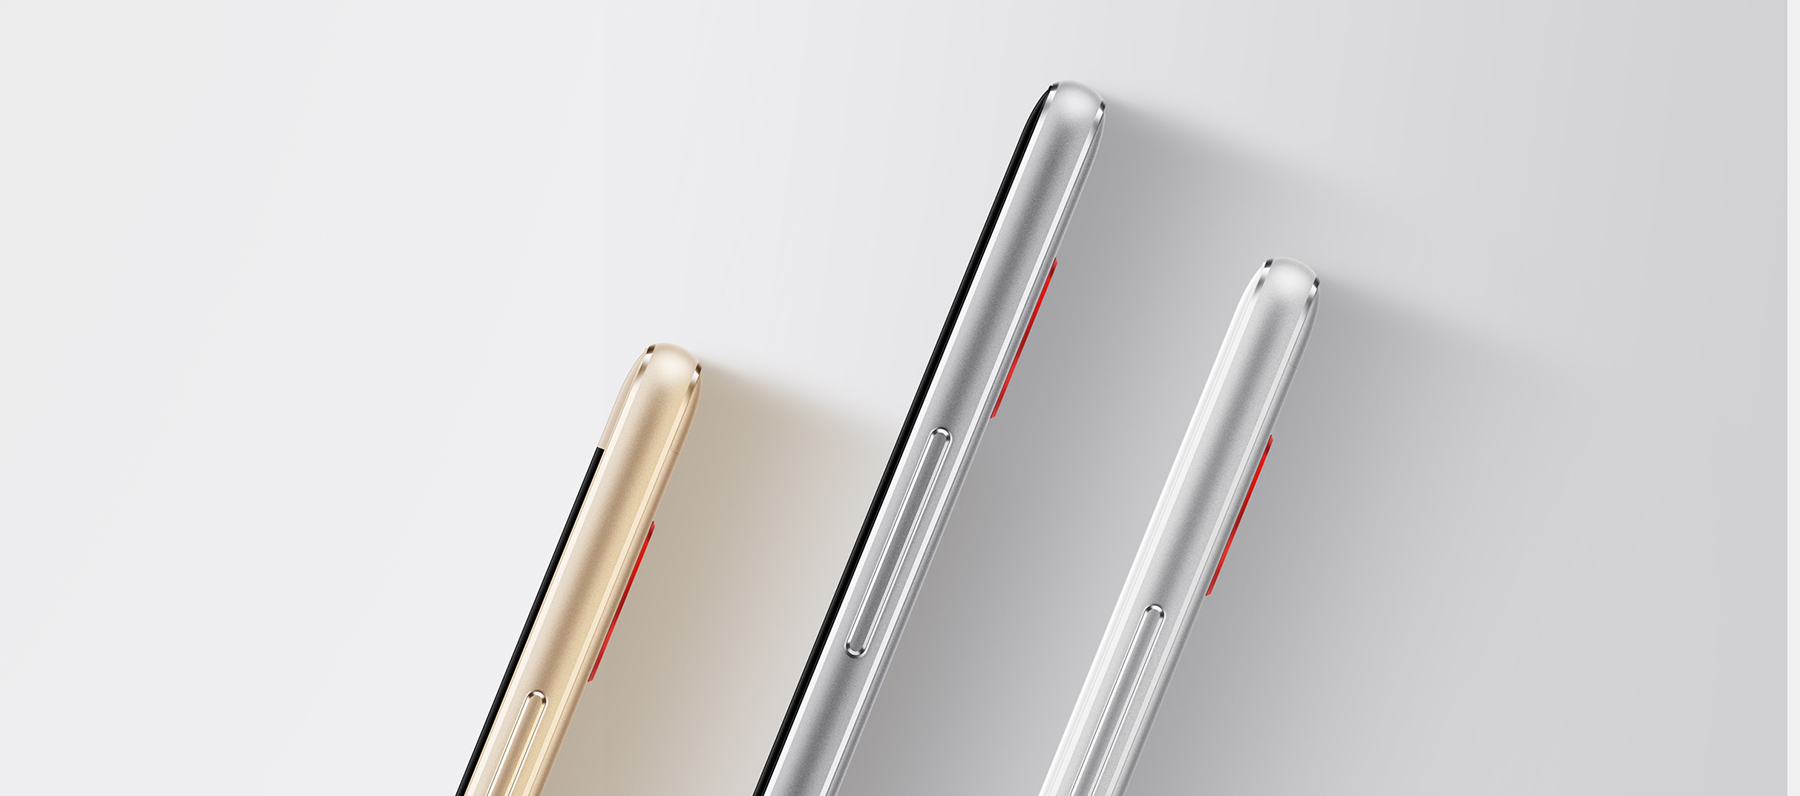 ZTE Nubia Z11 MAX Android 5.1 6 inch 4G Phablet MTK6755 Octa Core 1.8GHz 4GB RAM 64GB ROM GPS 13.0MP Rear Camera Type-C Fingerprint Scanner Classic Version